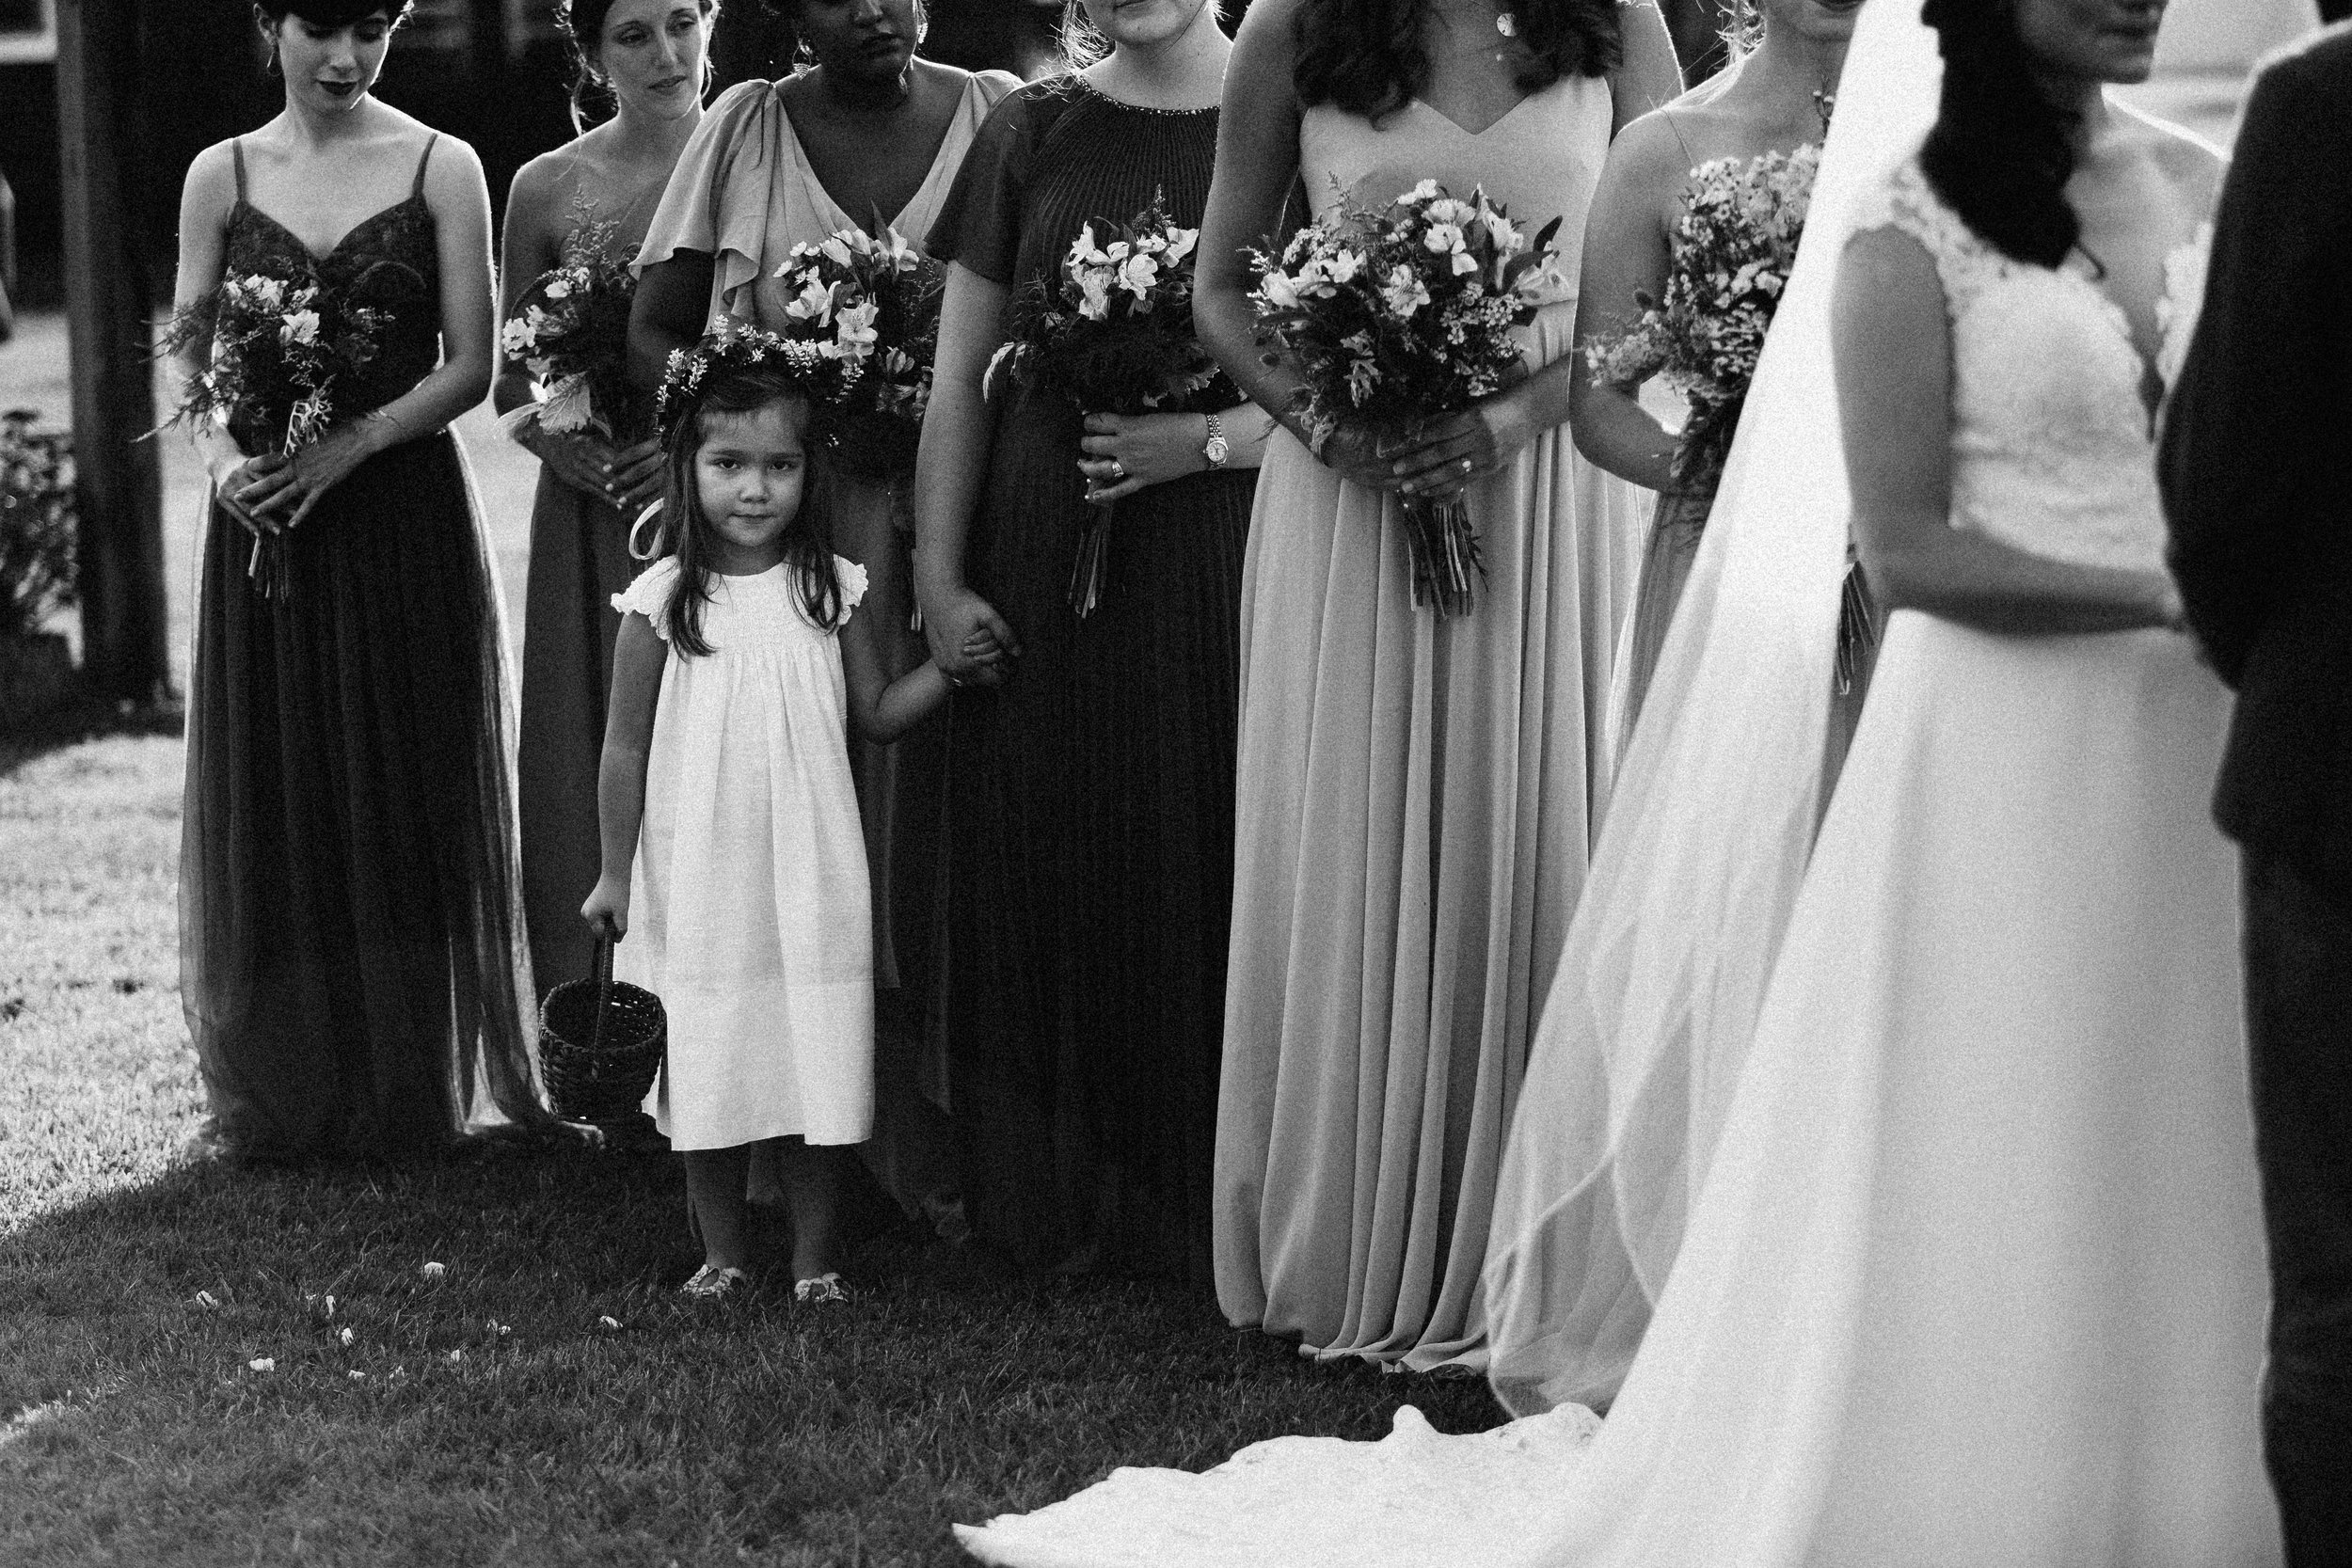 cleveland_georgia_mountain_laurel_farm_natural_classic_timeless_documentary_candid_wedding_emotional_photojournalism_river_west_1674.jpg